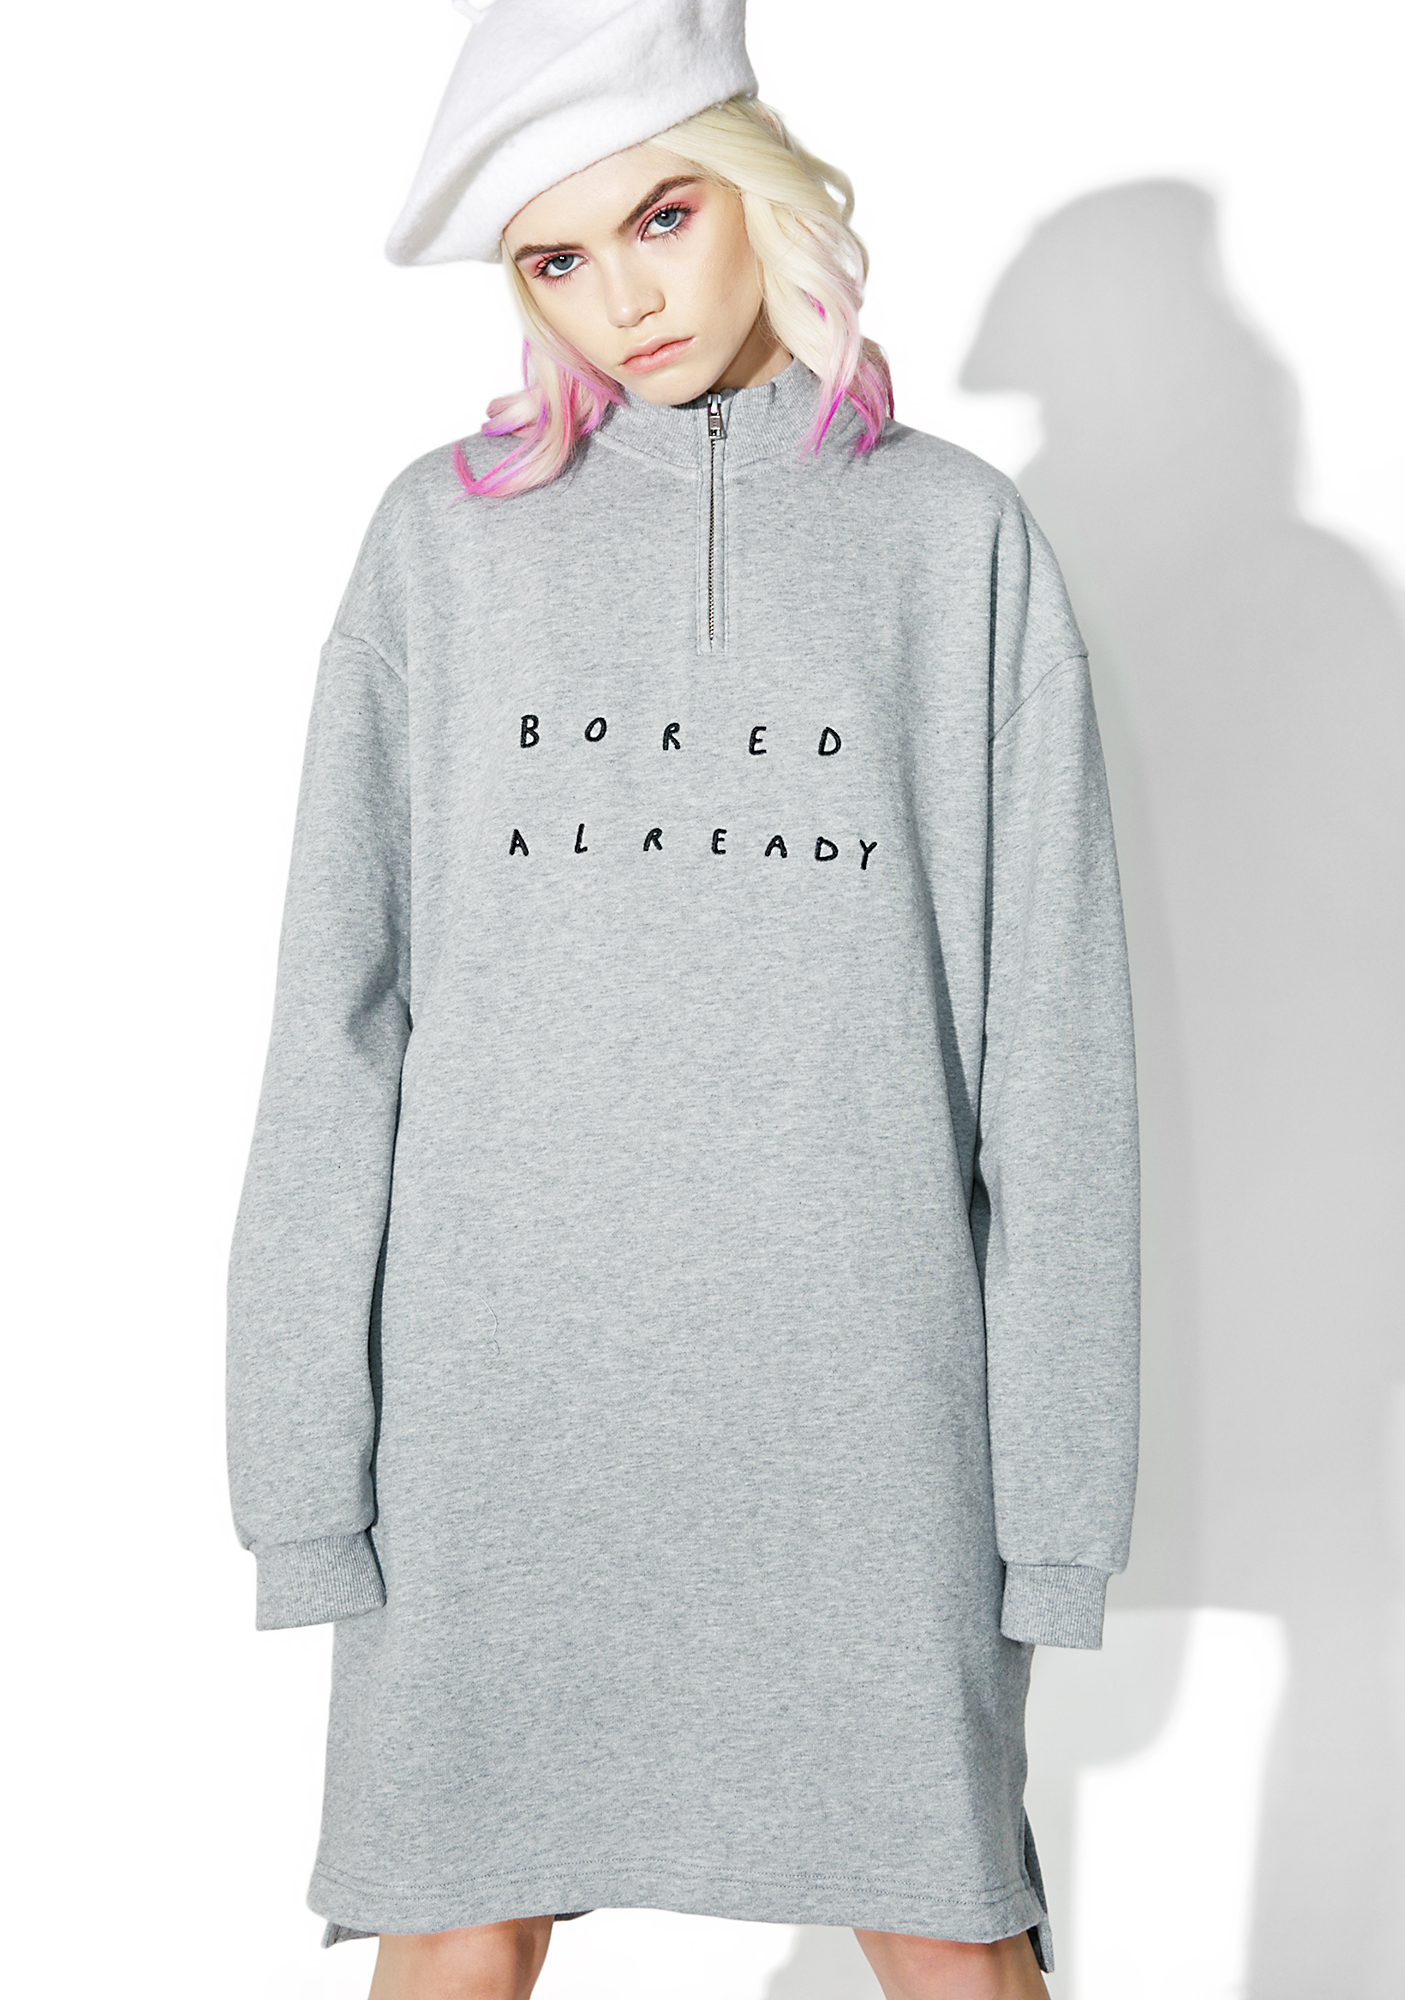 Lazy Oaf Boring Zip Up Sweatshirt